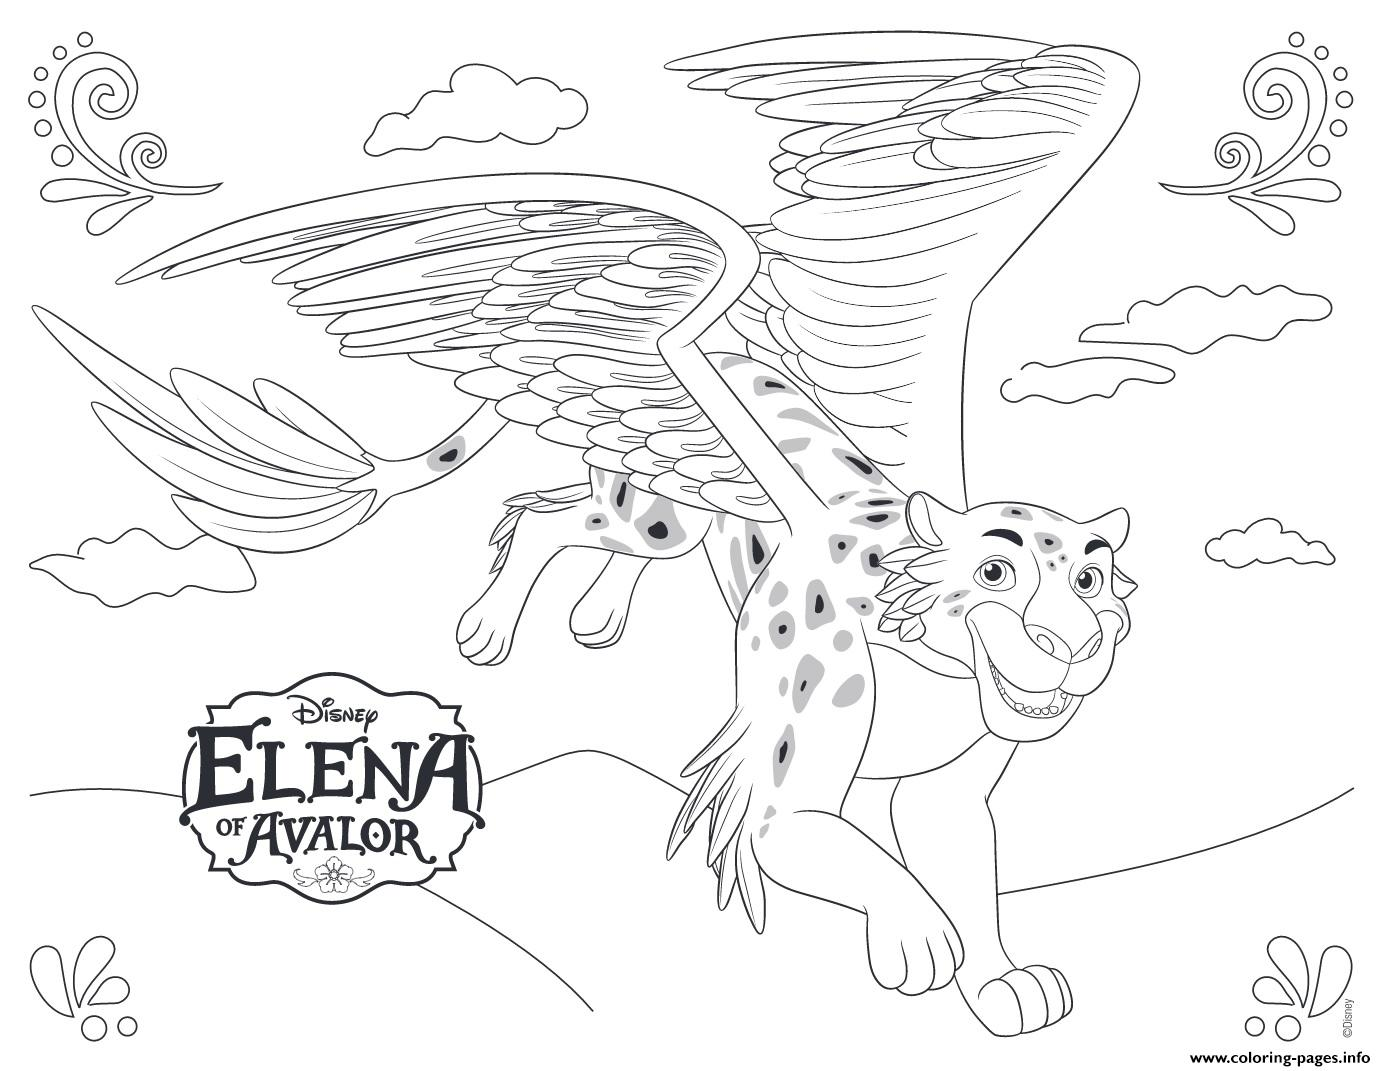 Elena Of Avalor Jaquin Disney Princess Coloring Pages Printable